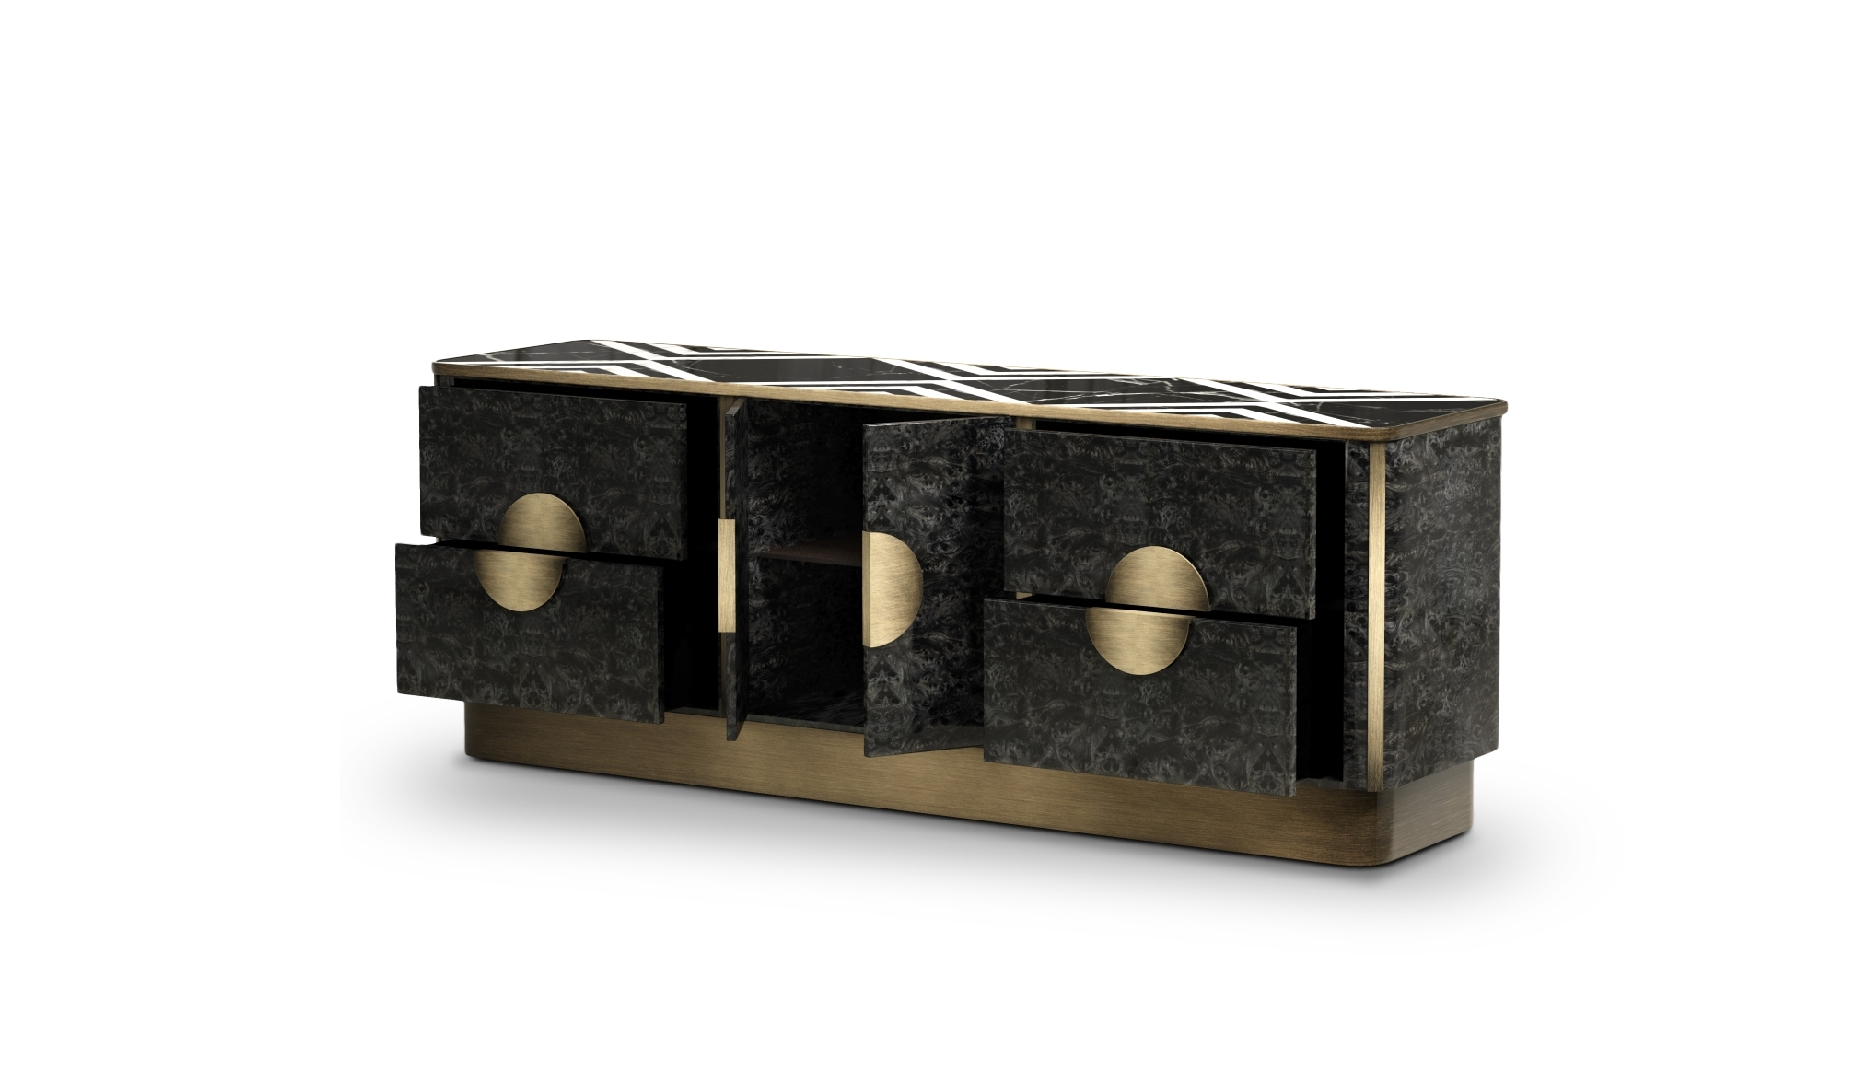 Knox Sideboardporustudio | Breath Out Creativity With Latest Aged Brass Sideboards (View 19 of 20)